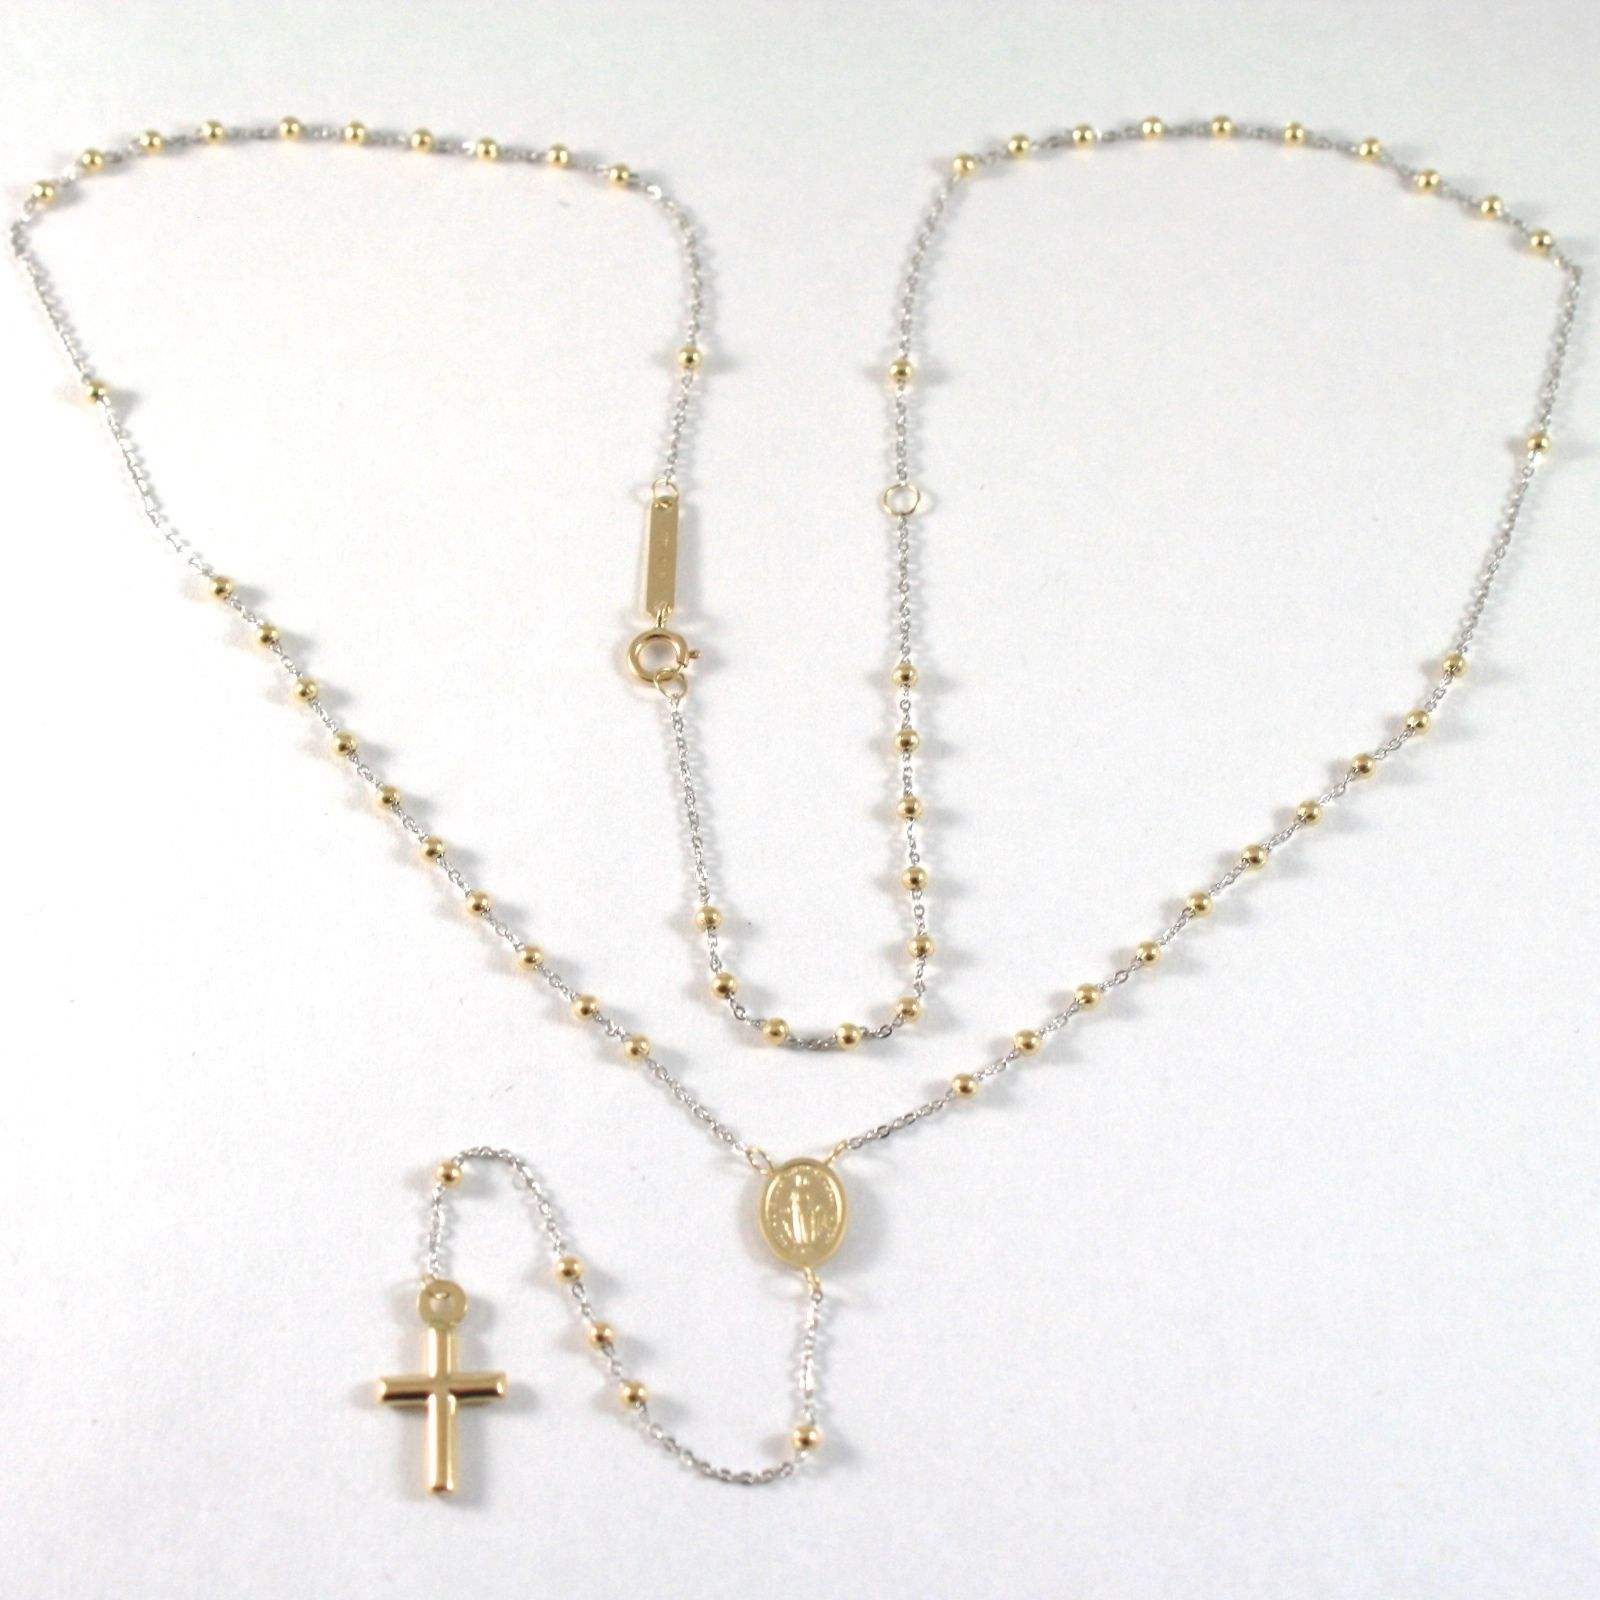 NECKLACE ROSARY YELLOW GOLD AND WHITE 750 18K, MEDAL MIRACULOUS, CROSS 47 CM